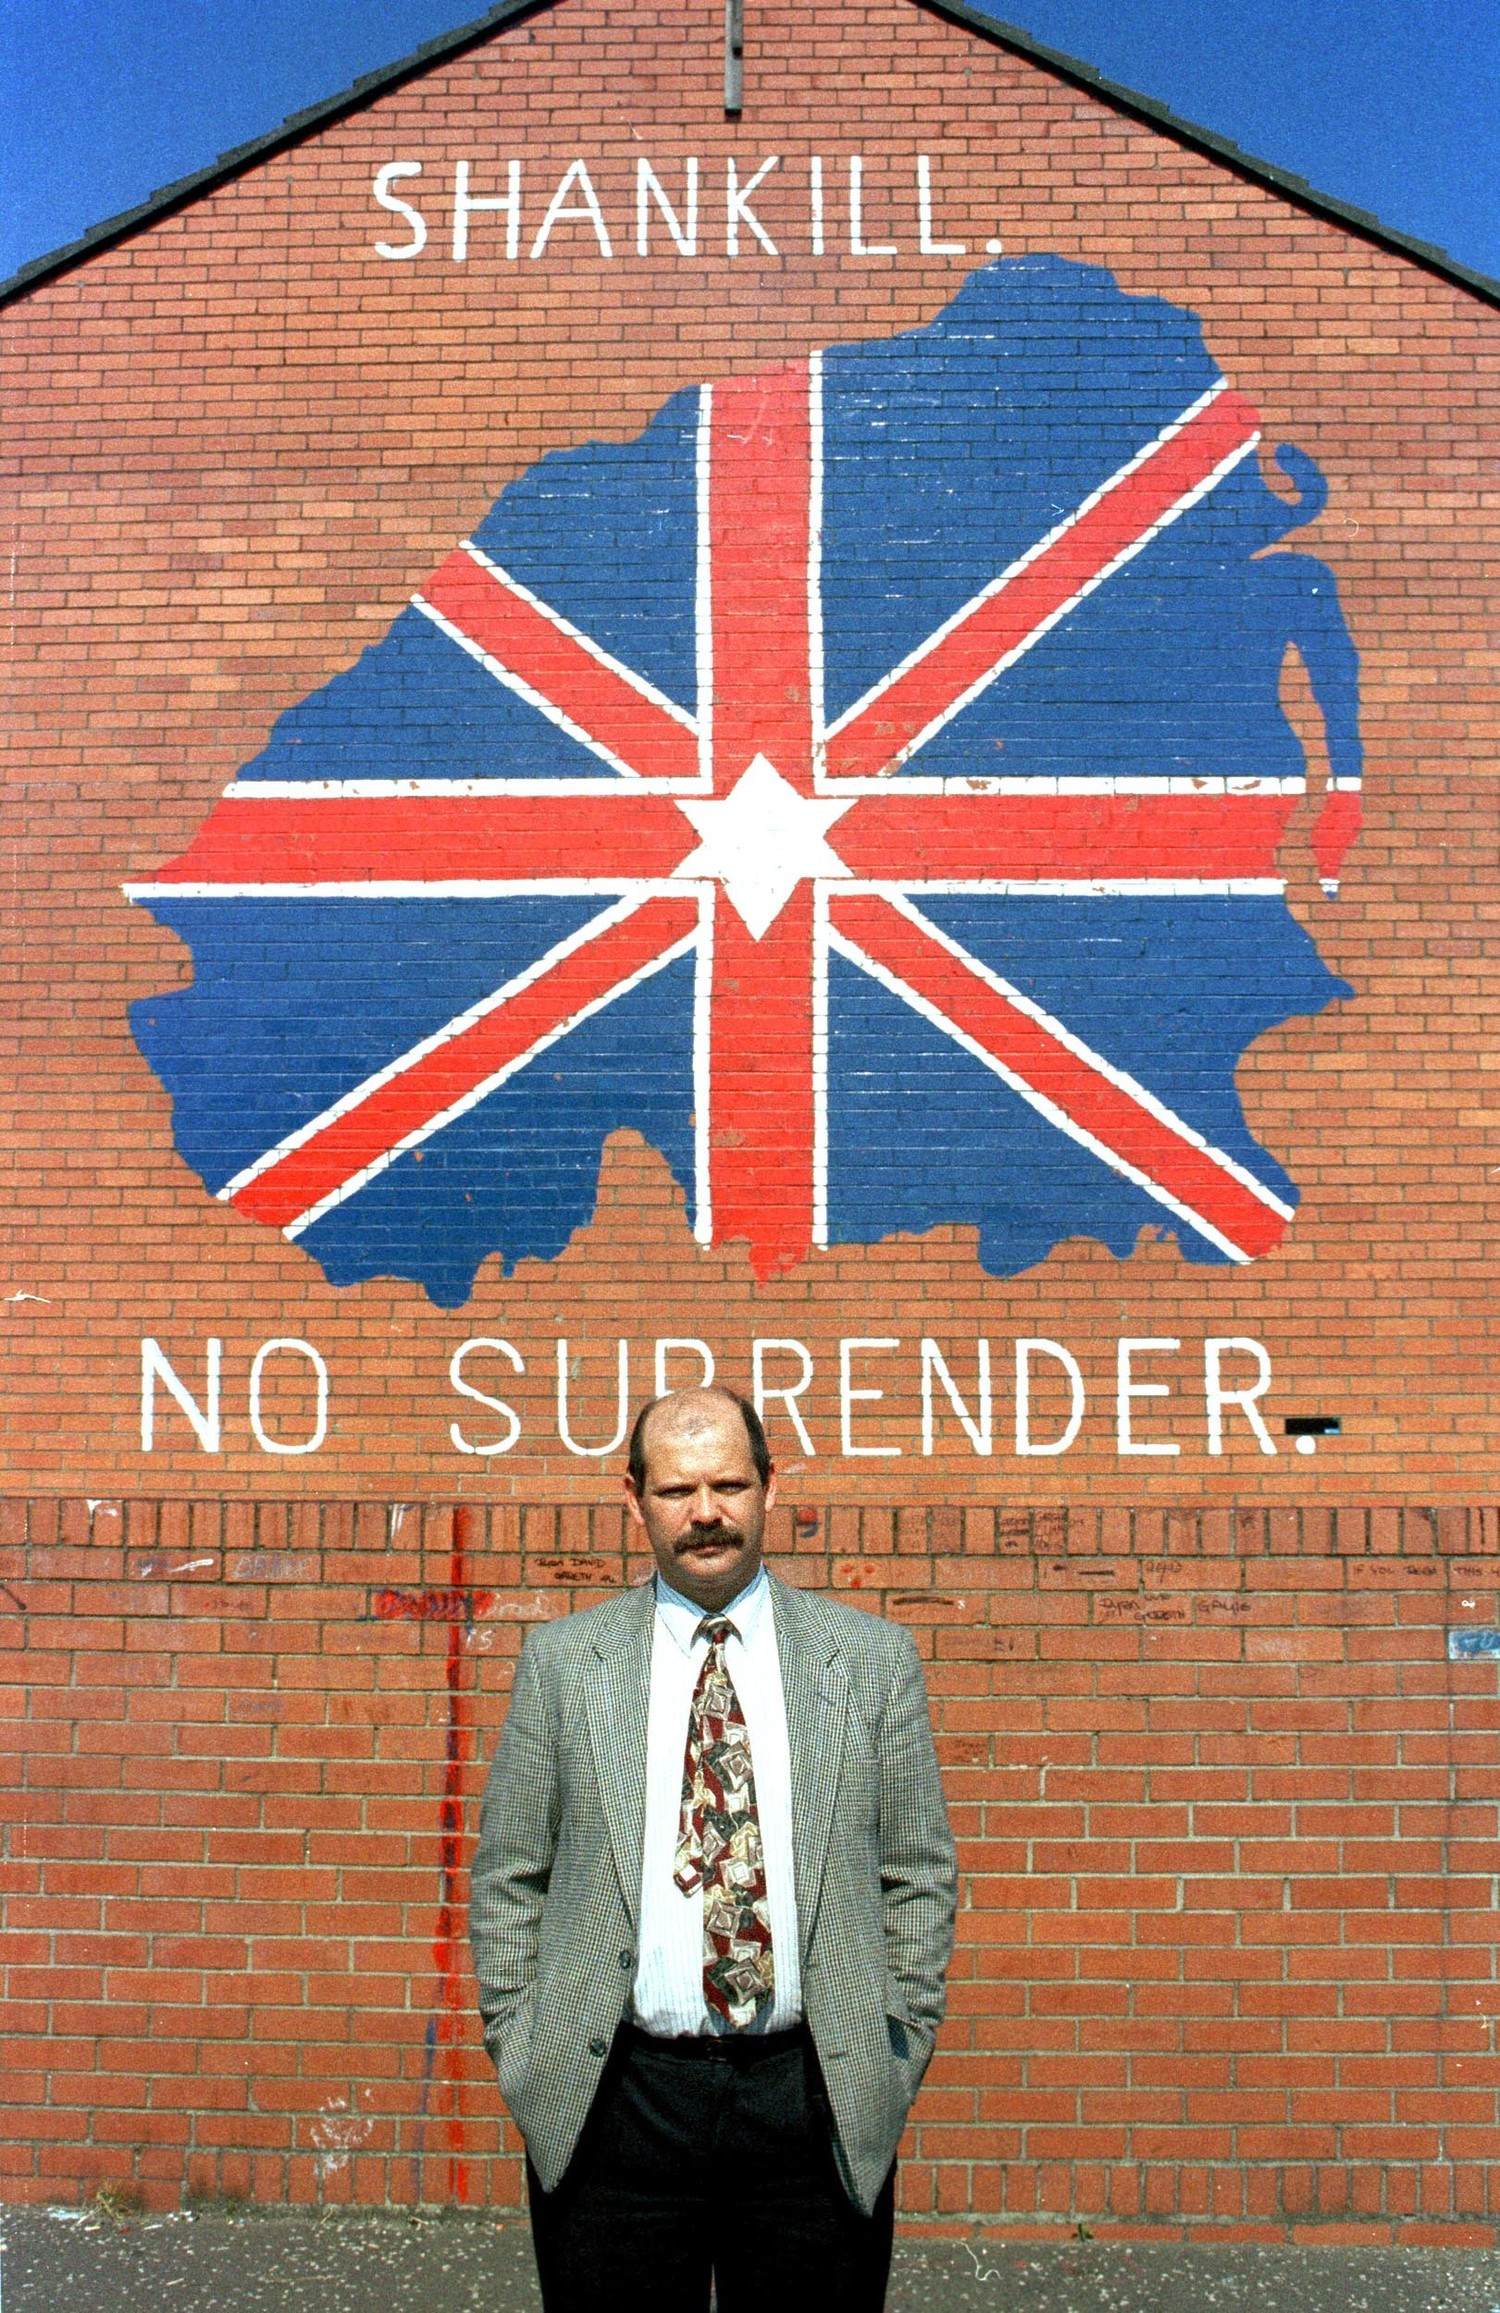 Former Progressive Unionist Party leader David Ervine who died in 2007.